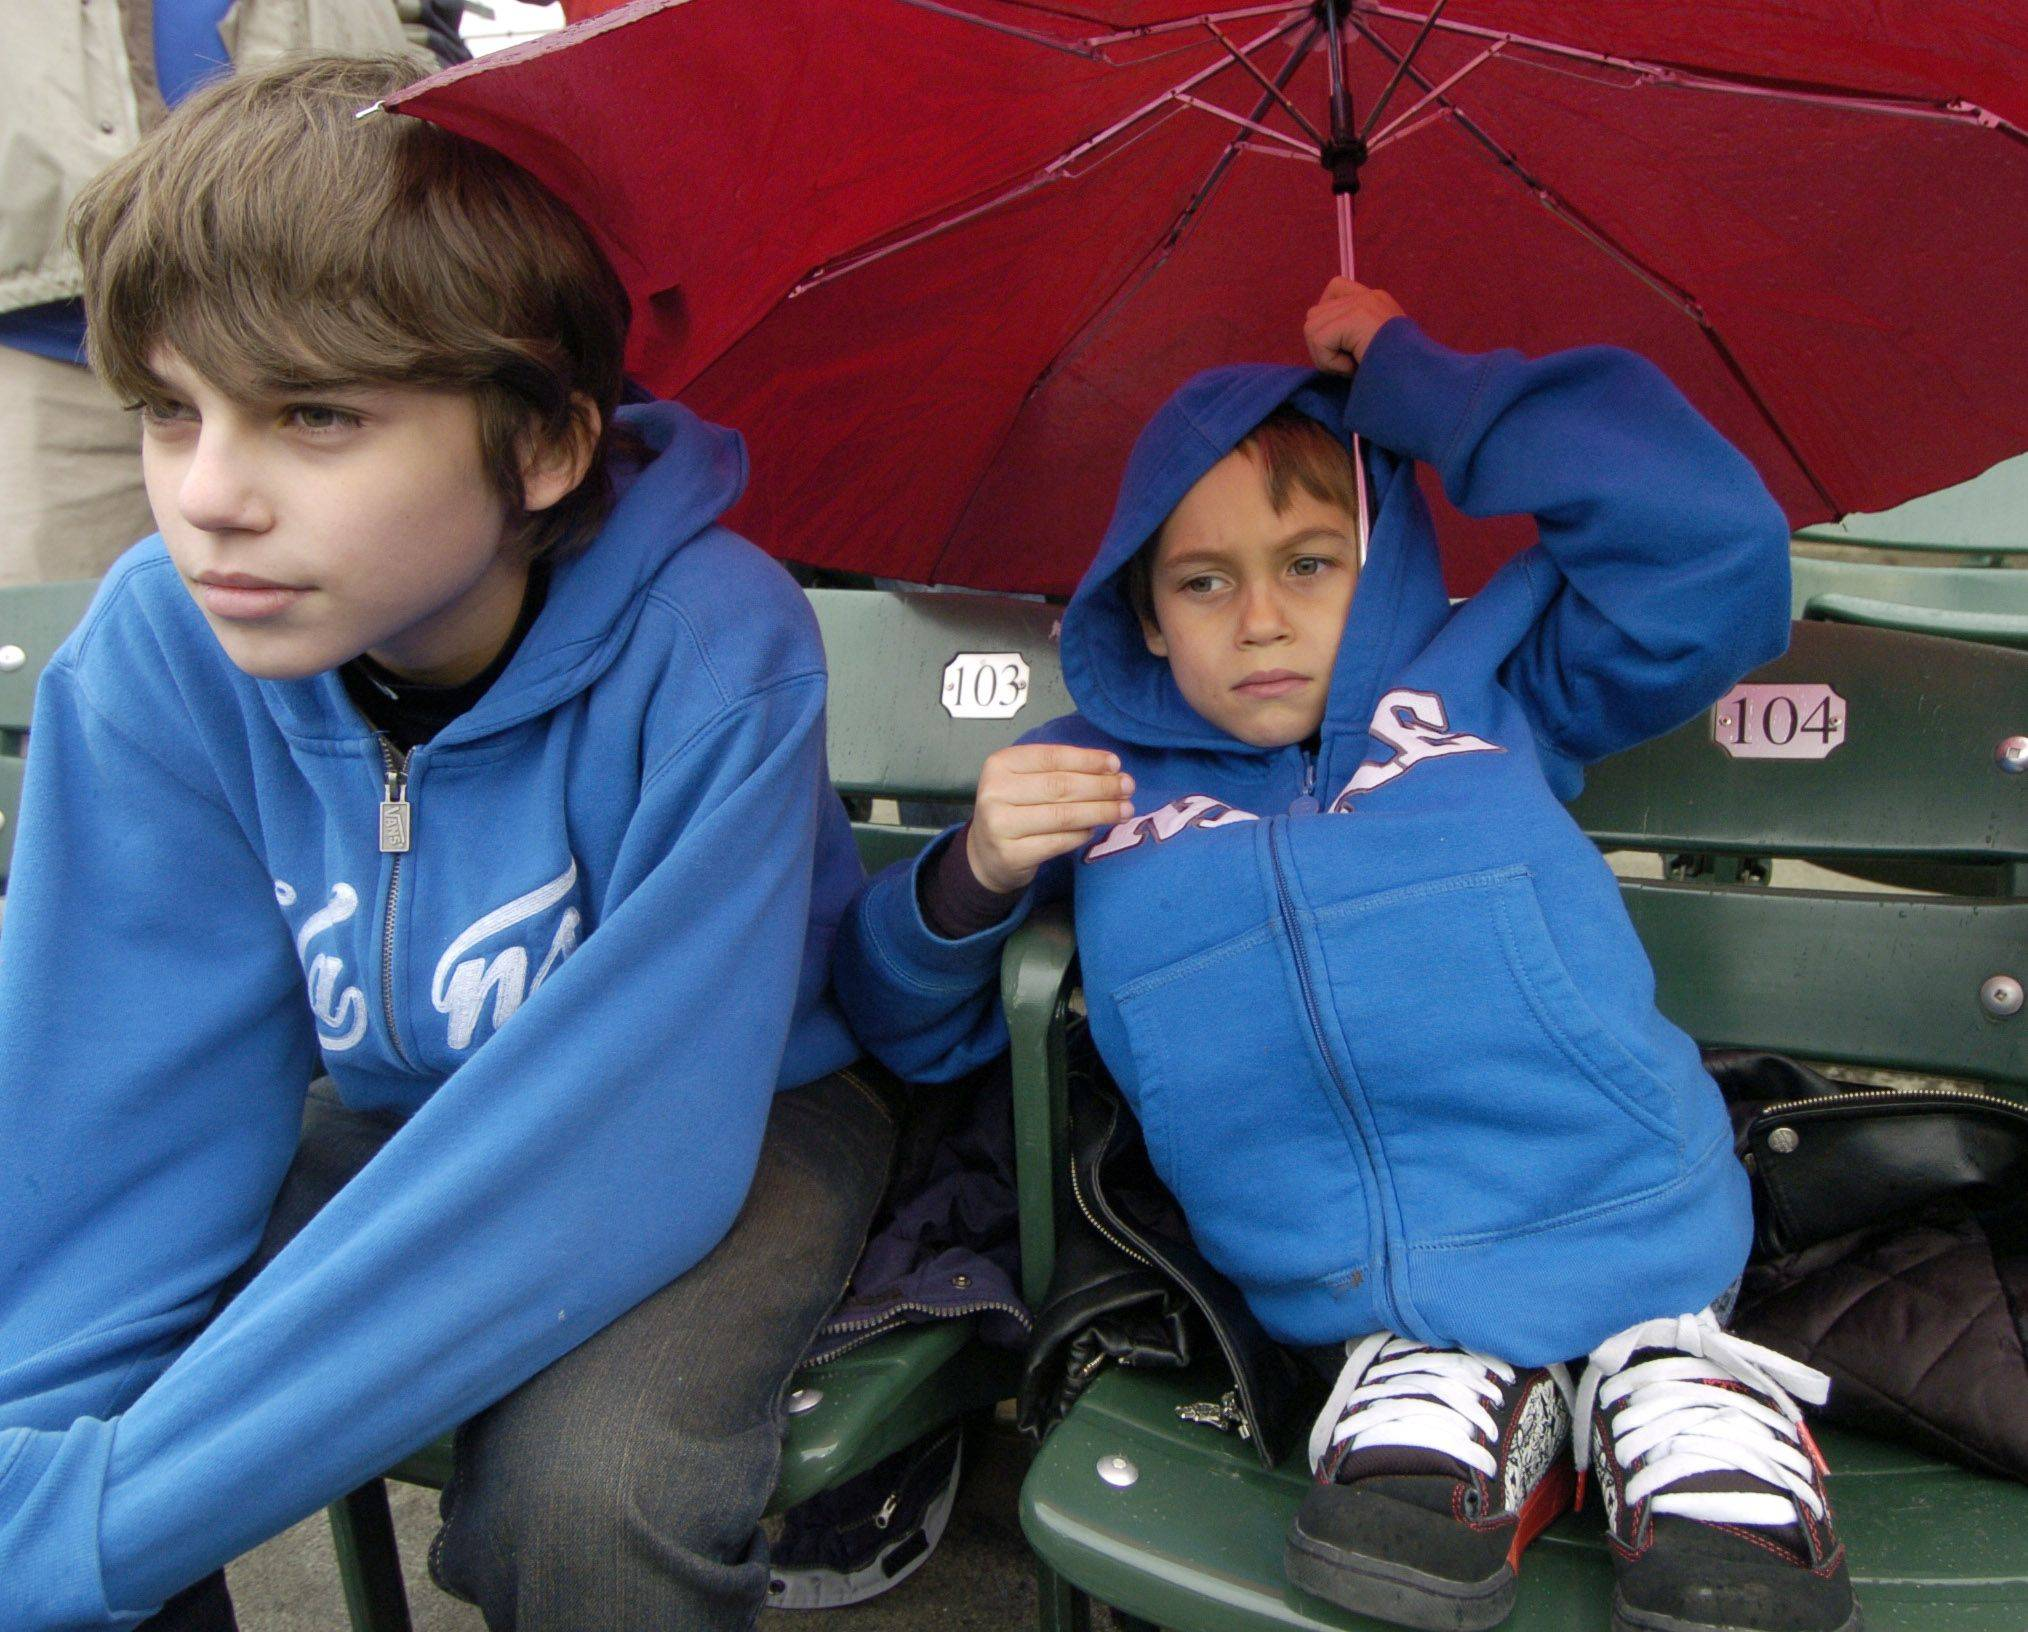 Adam Gilliam, 13, of Aurora, left, and his brother Zak, 6, try to stay warm and dry as they await the start of the game.